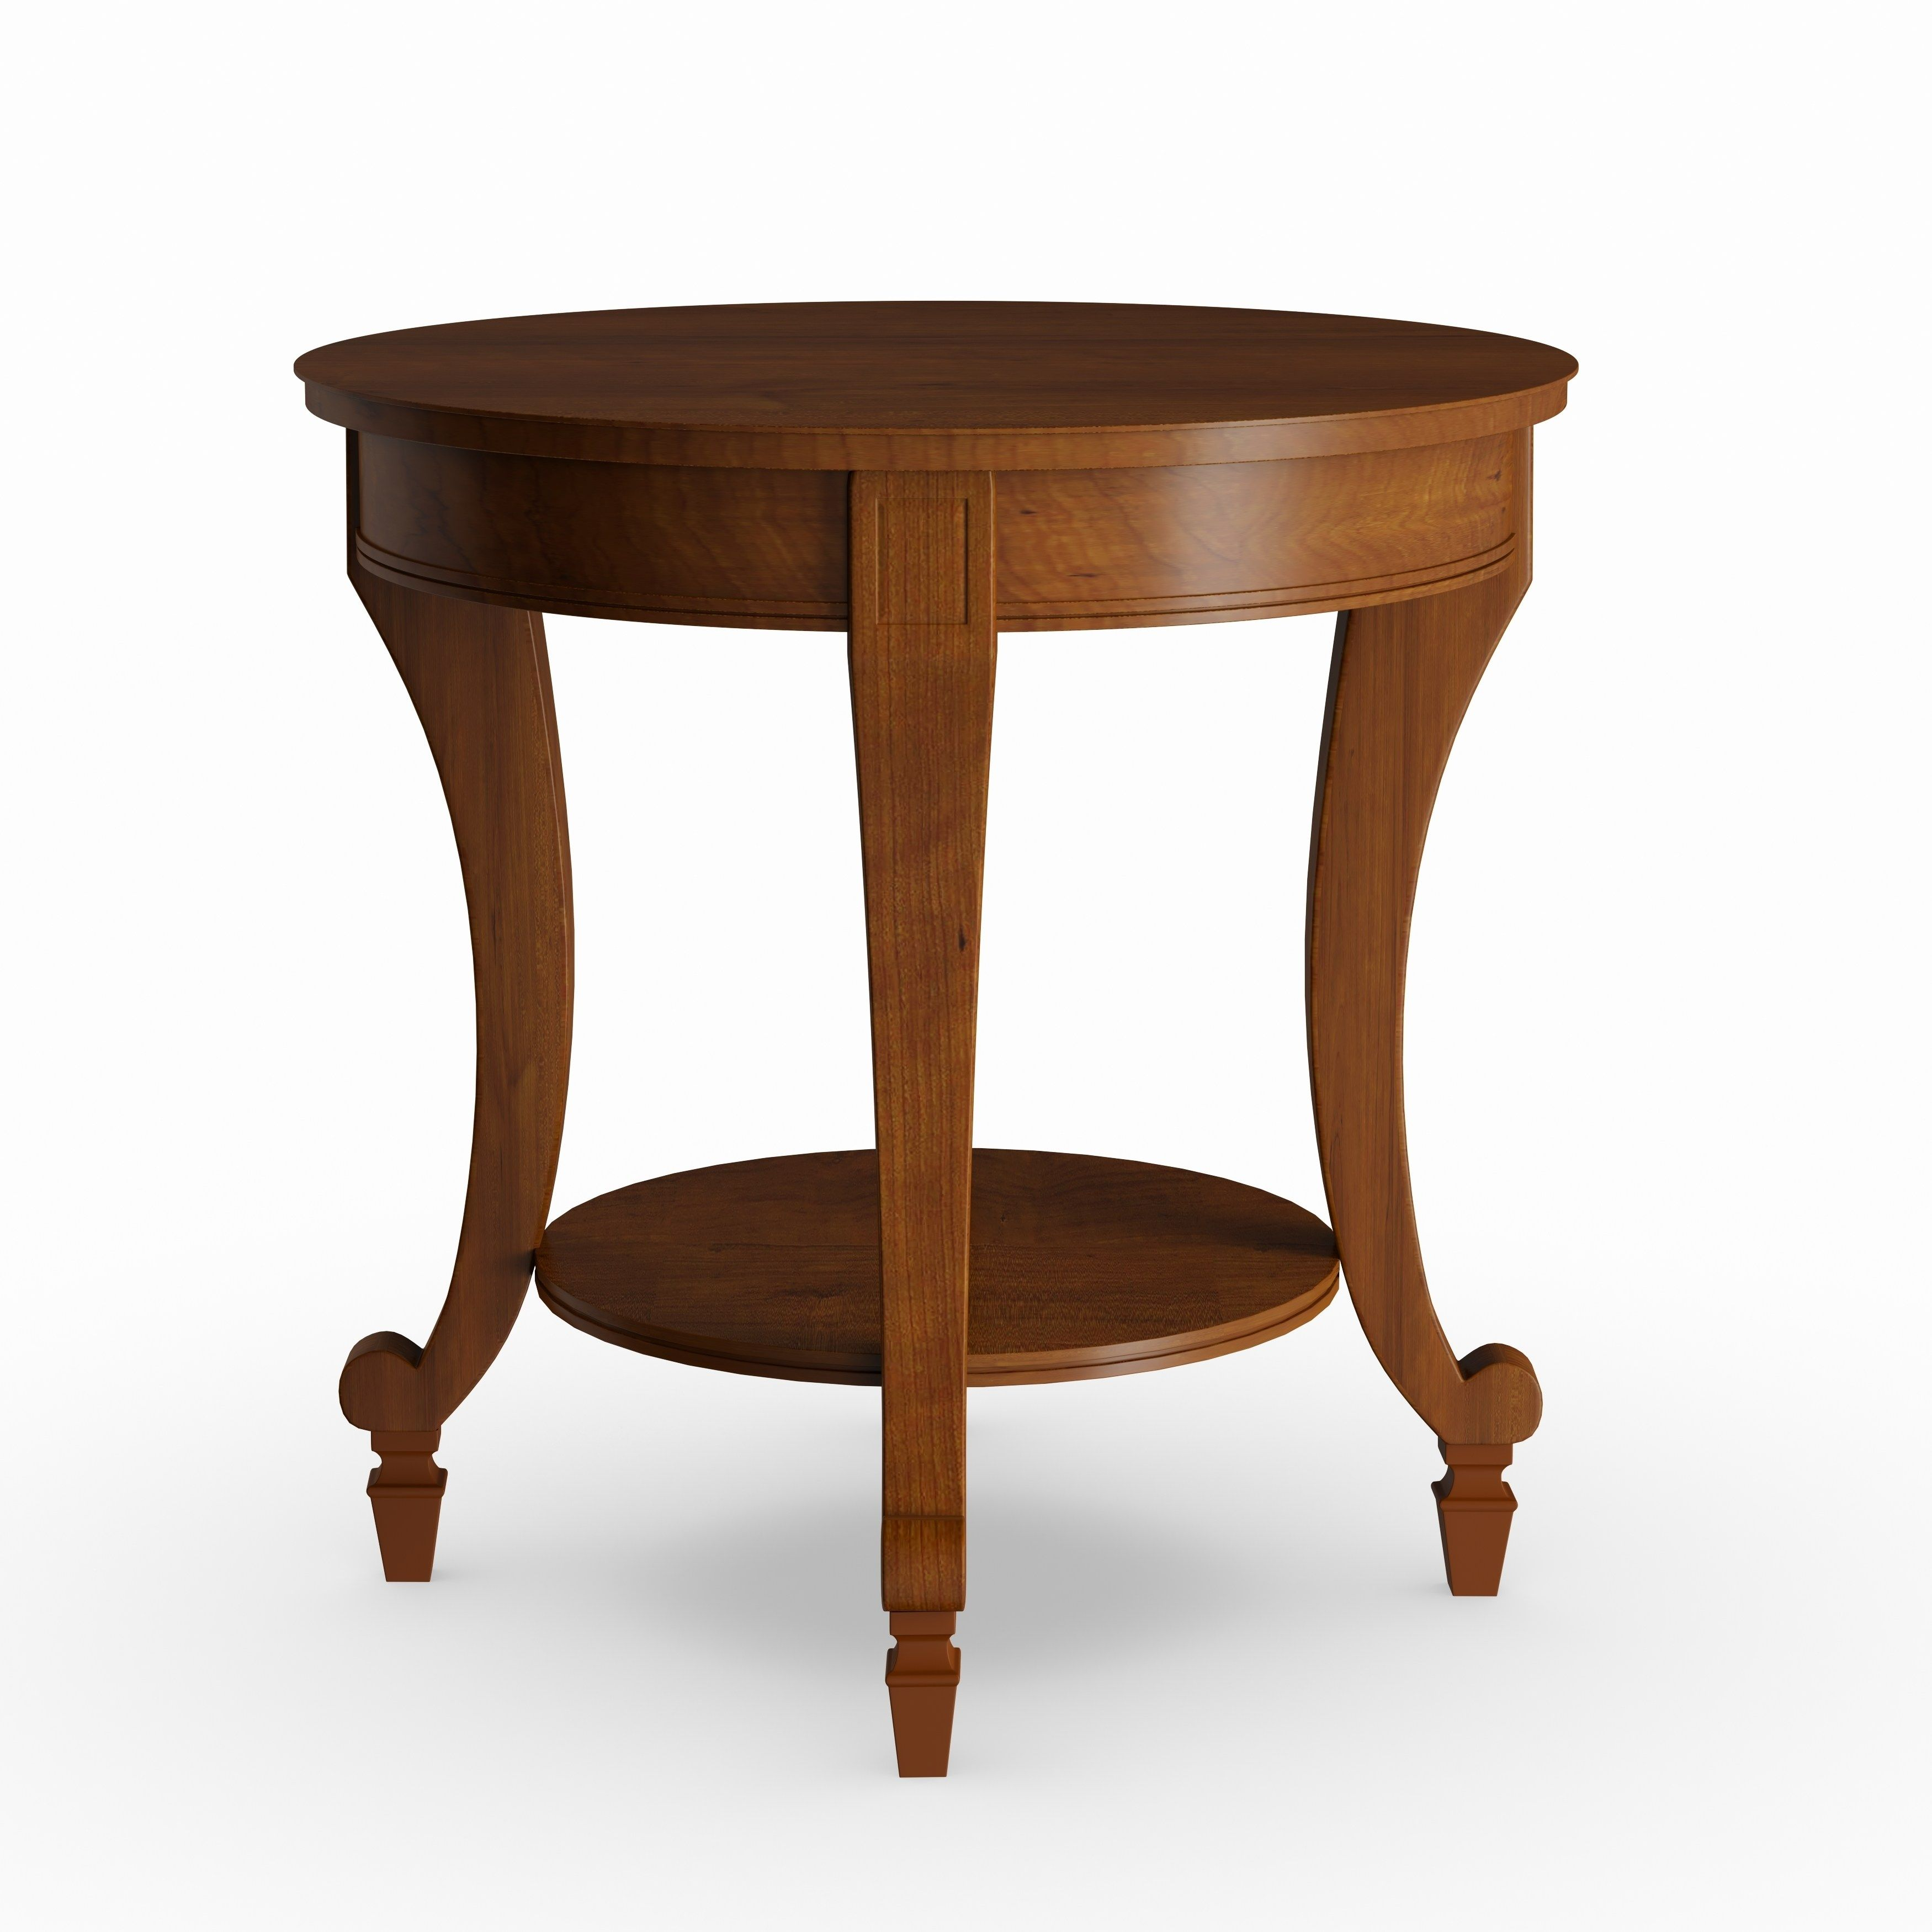 Gracewood Hollow Dones Traditional Cinnamon Round End Table Brown Magnussen Home Furnishings Decorating Coffee Tables Oval Coffee Tables End Tables